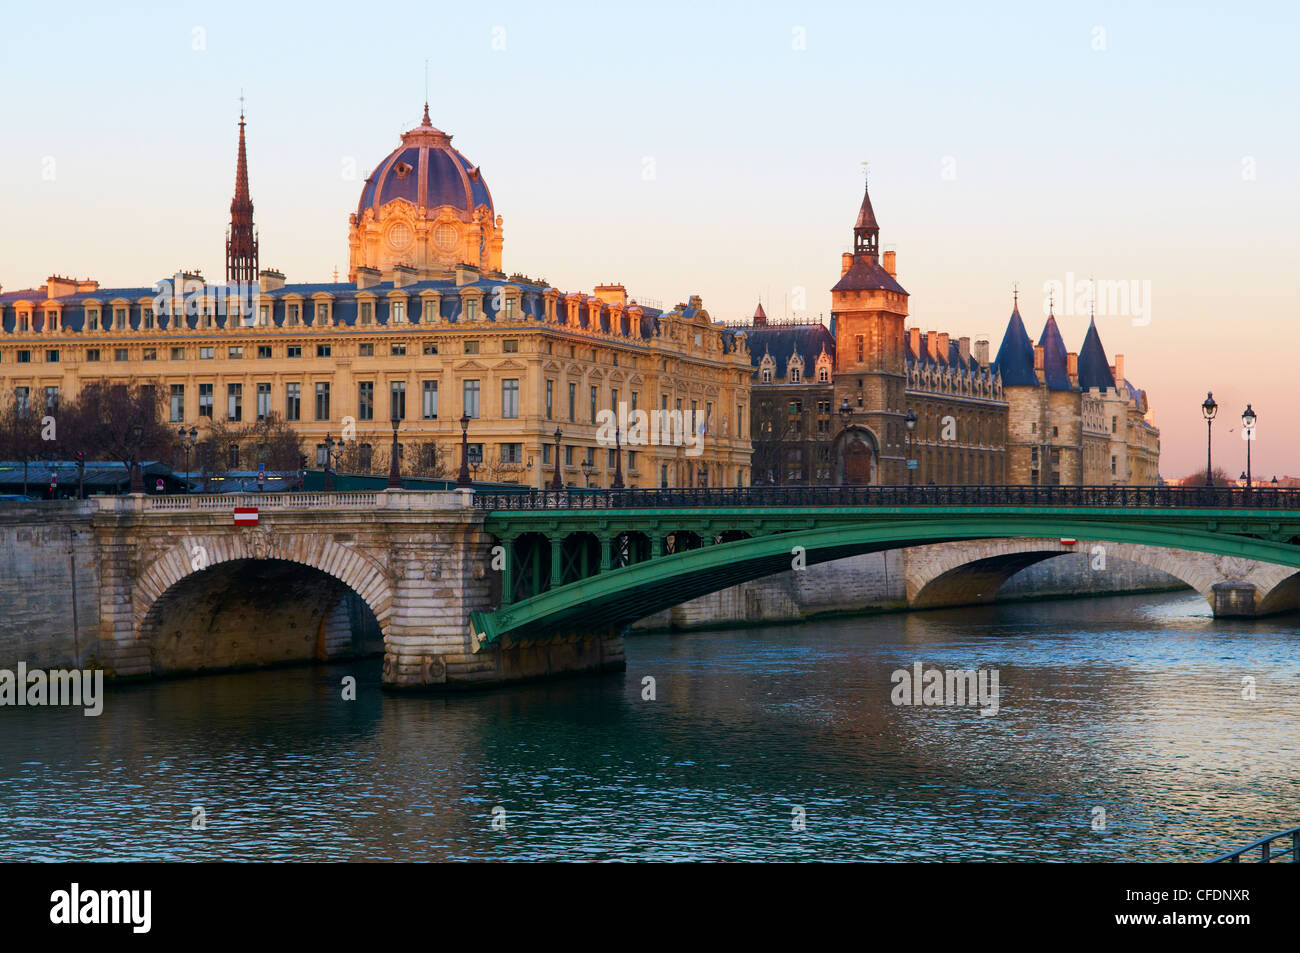 The Conciergerie on the Cite Island, the banks of the River Seine, UNESCO World Heritage Site, Paris, France, Europe - Stock Image